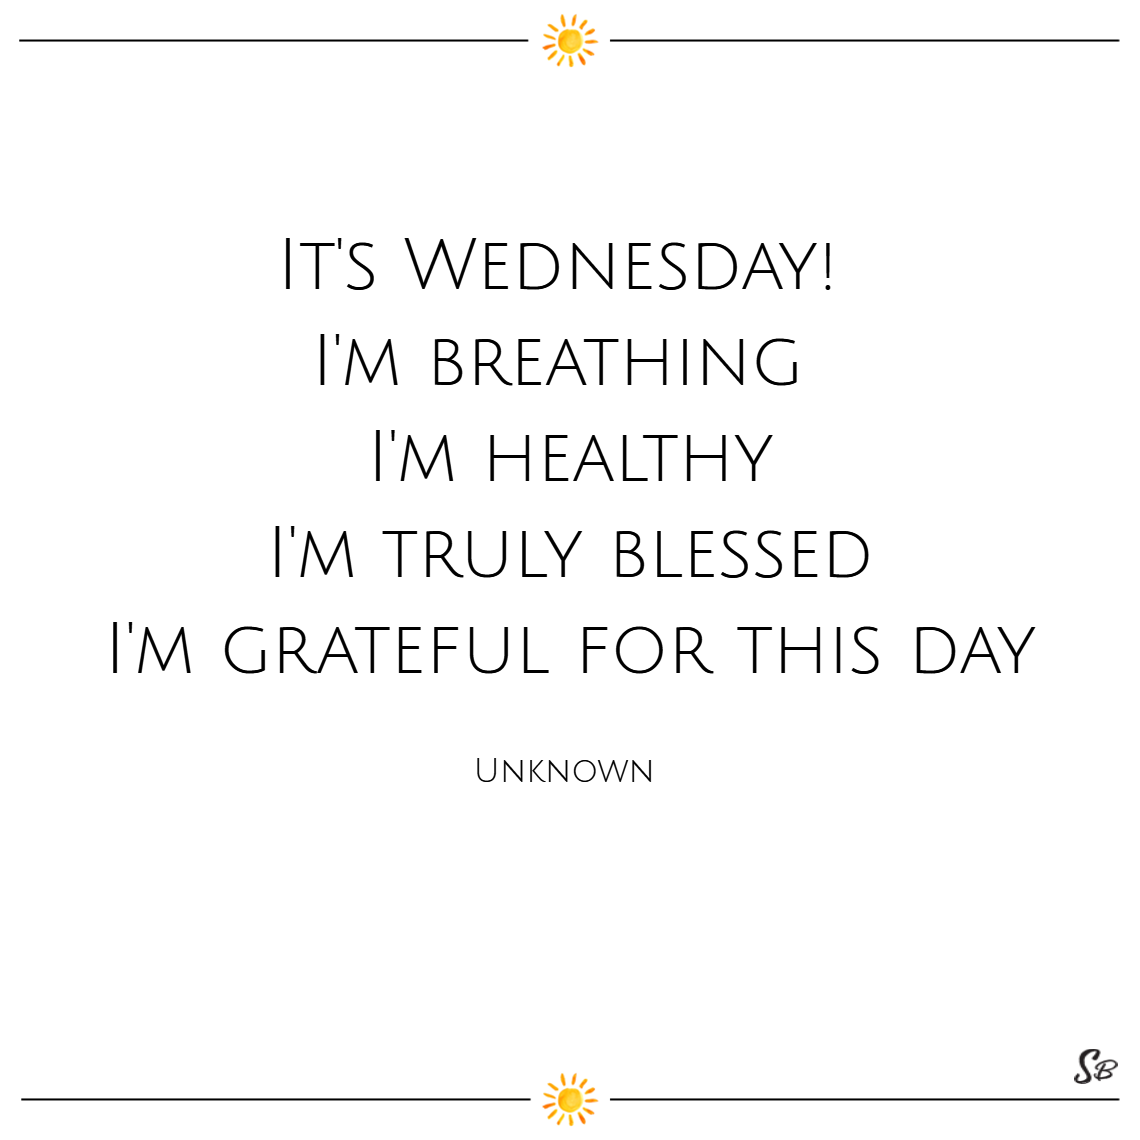 It's wednesday! i'm breathing. i'm healthy. i'm truly blessed. i'm grateful for this day. – unknown wednesday quotes